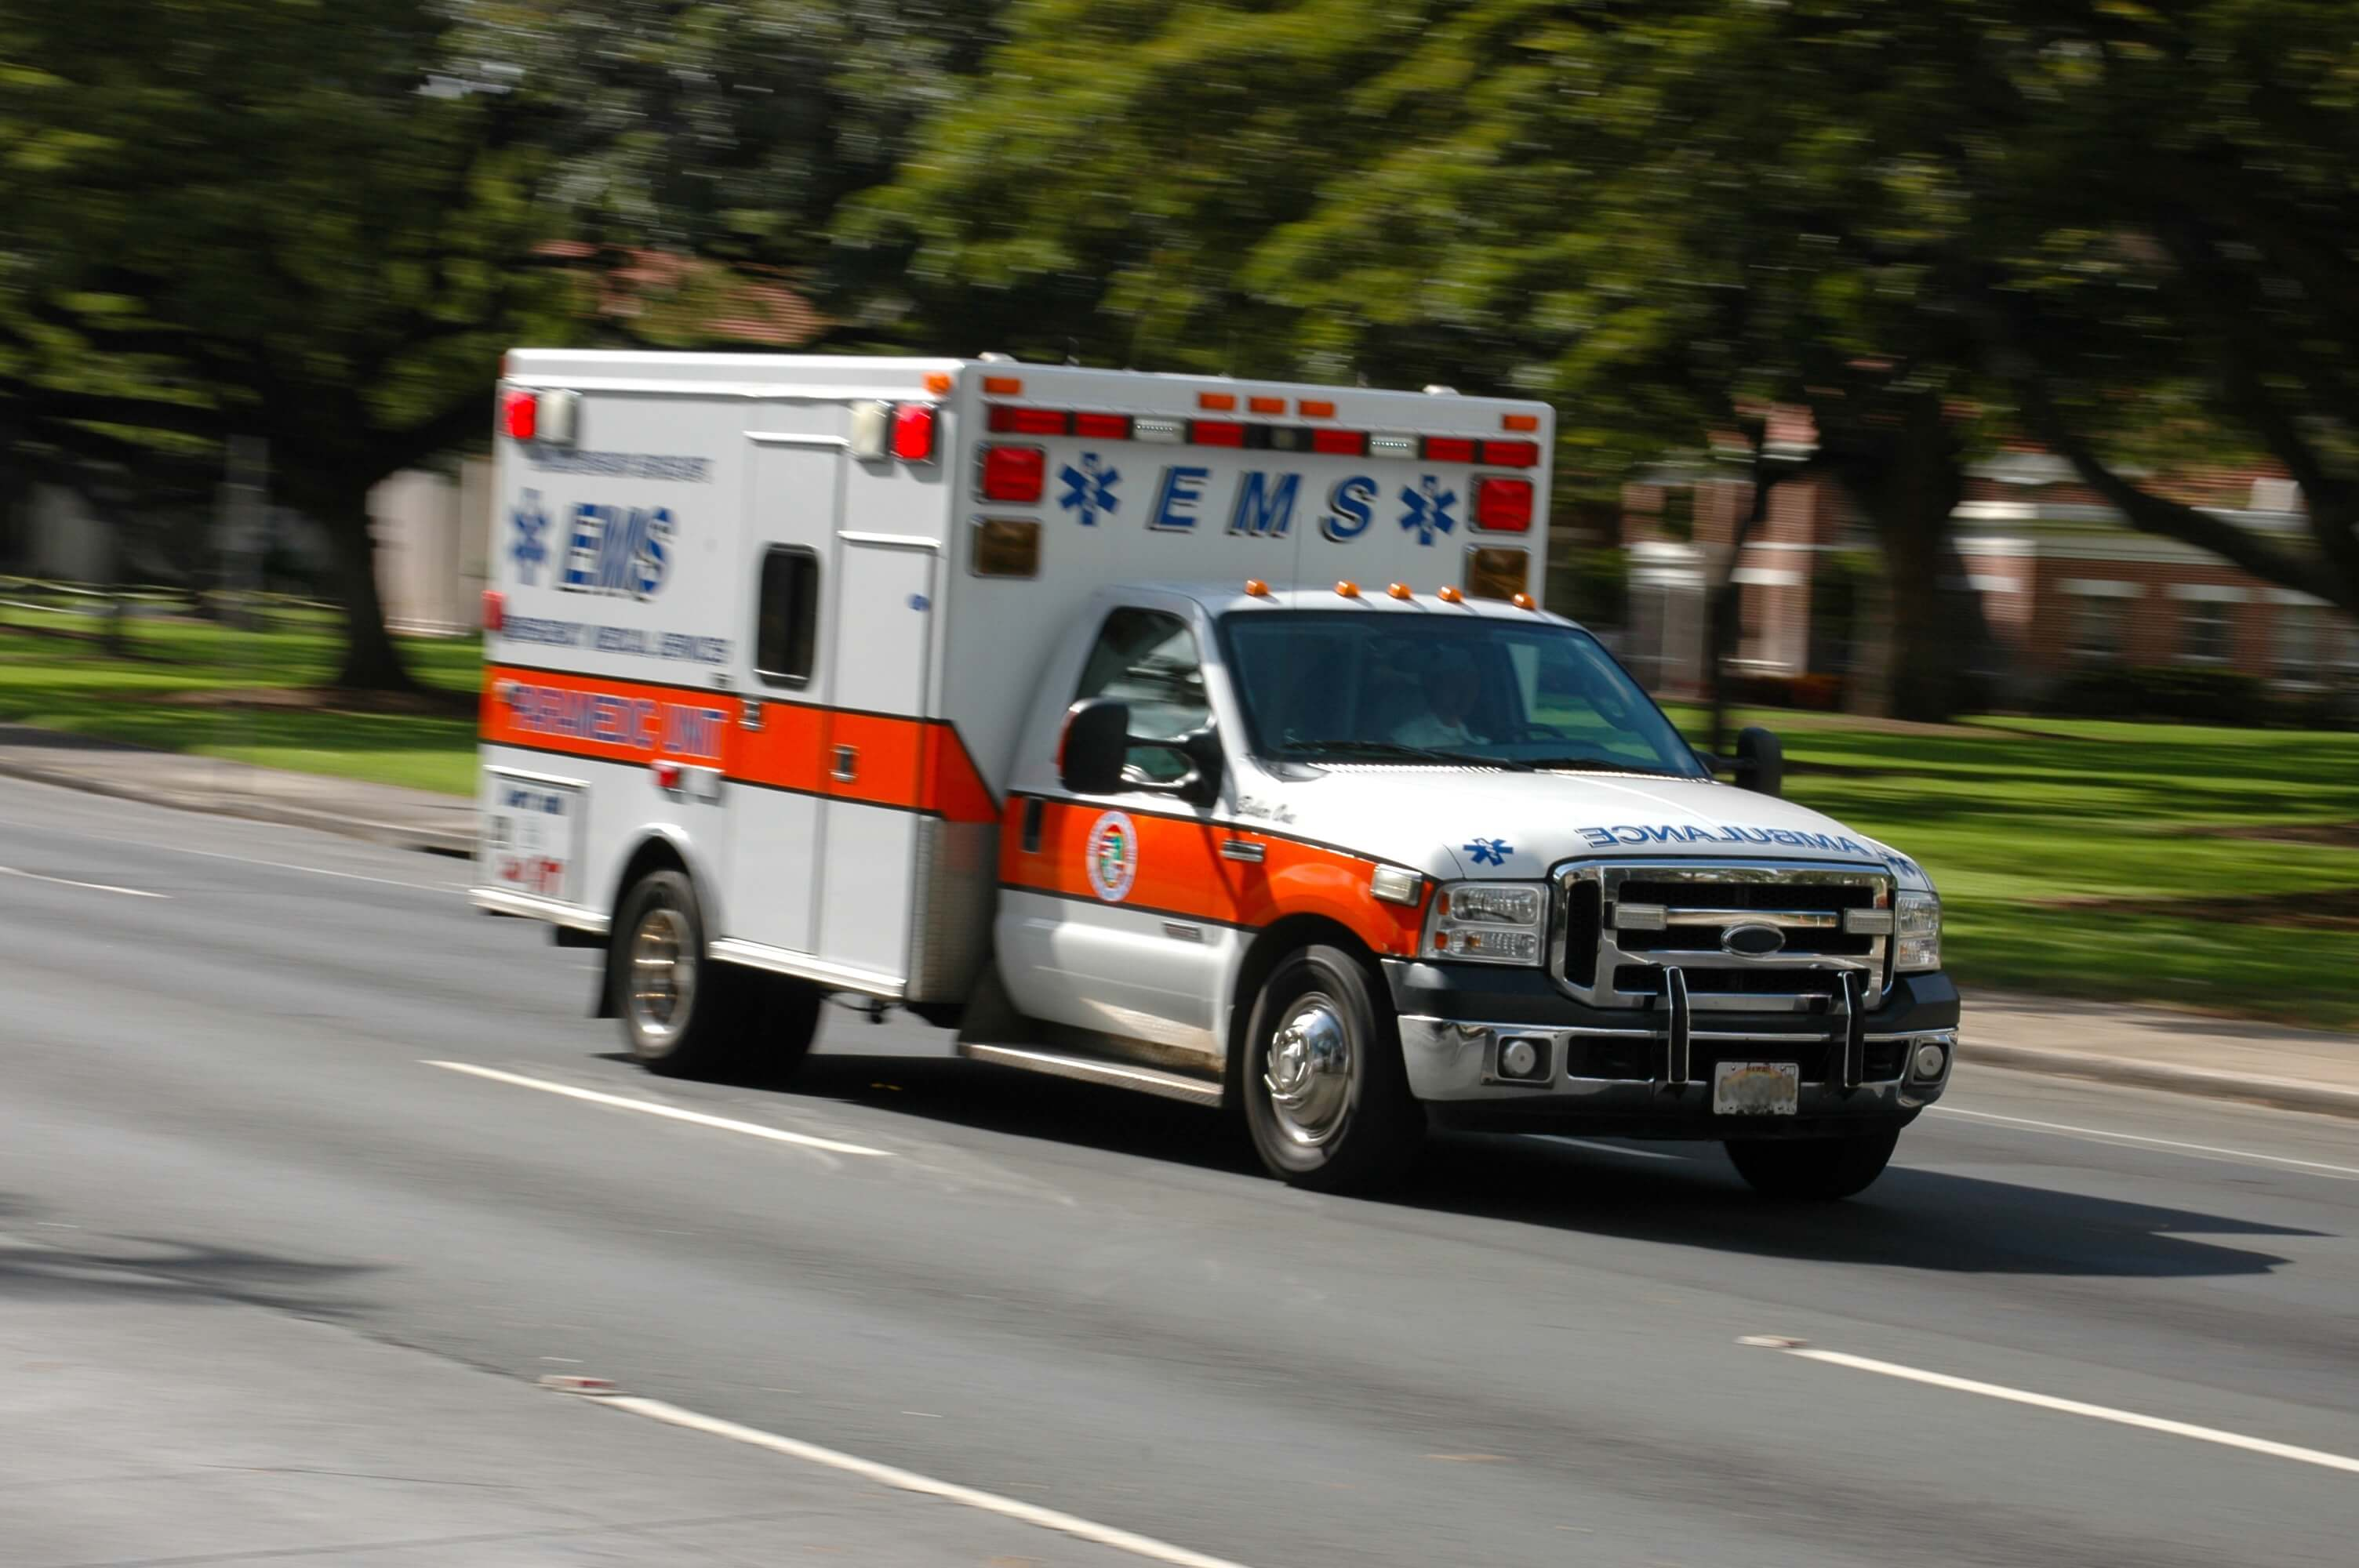 An ambulance rushes to help someone.